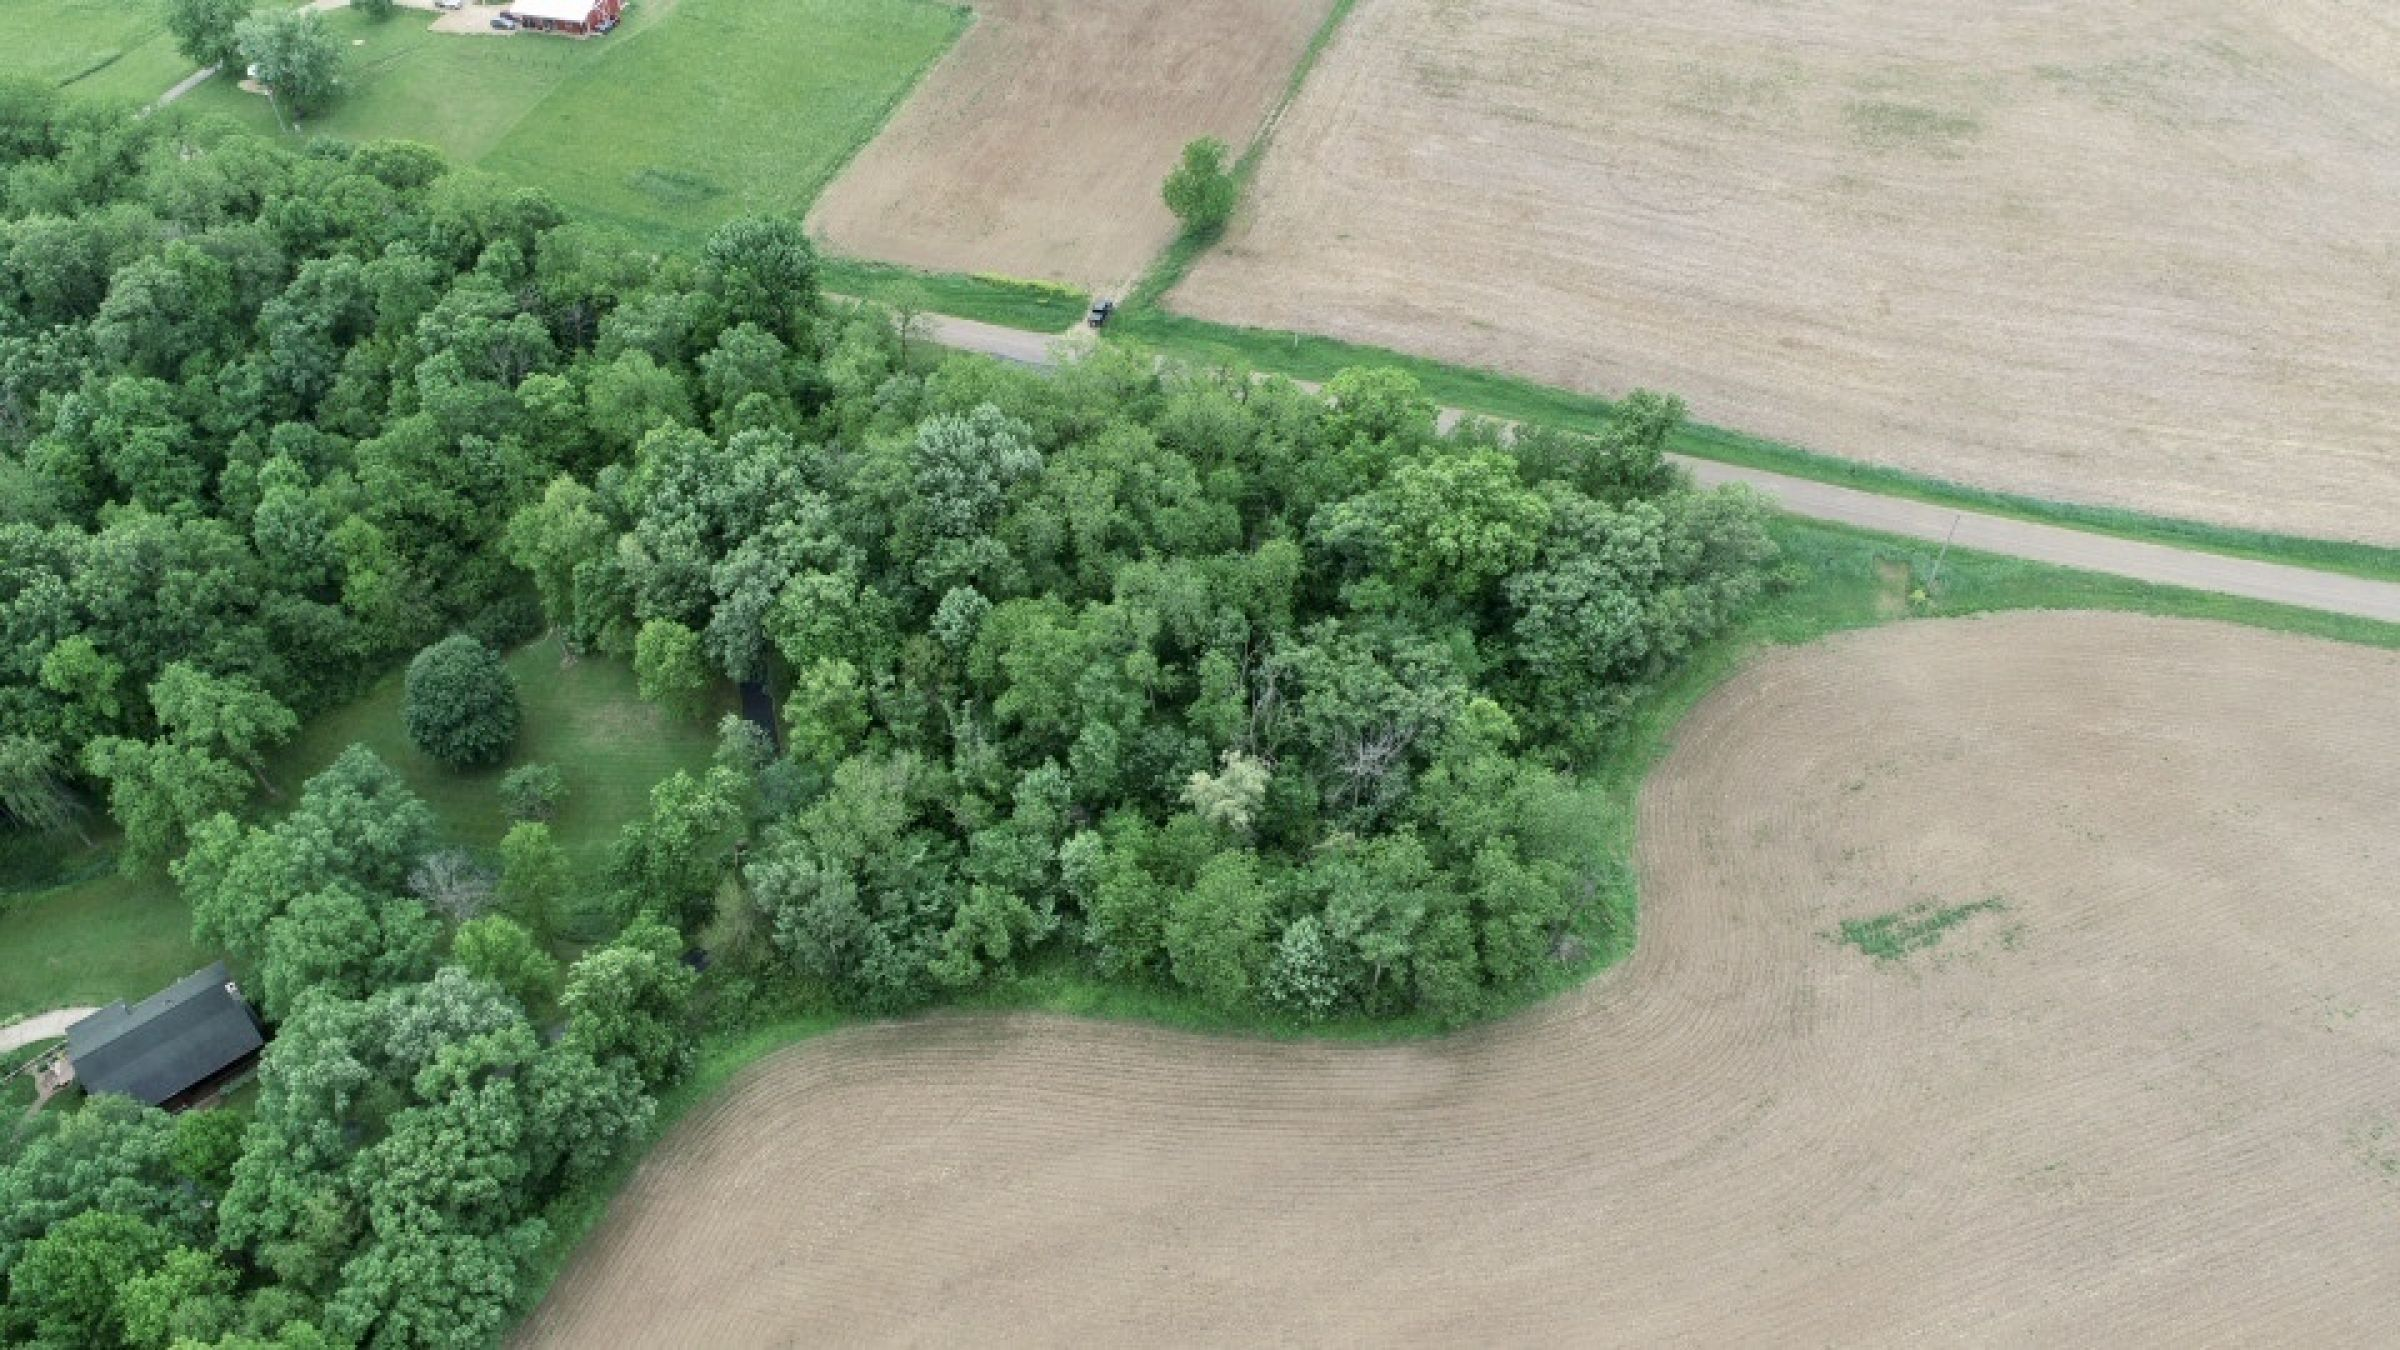 land-lafayette-county-wisconsin-1-acres-listing-number-15559-9-2021-05-28-184448.jpg